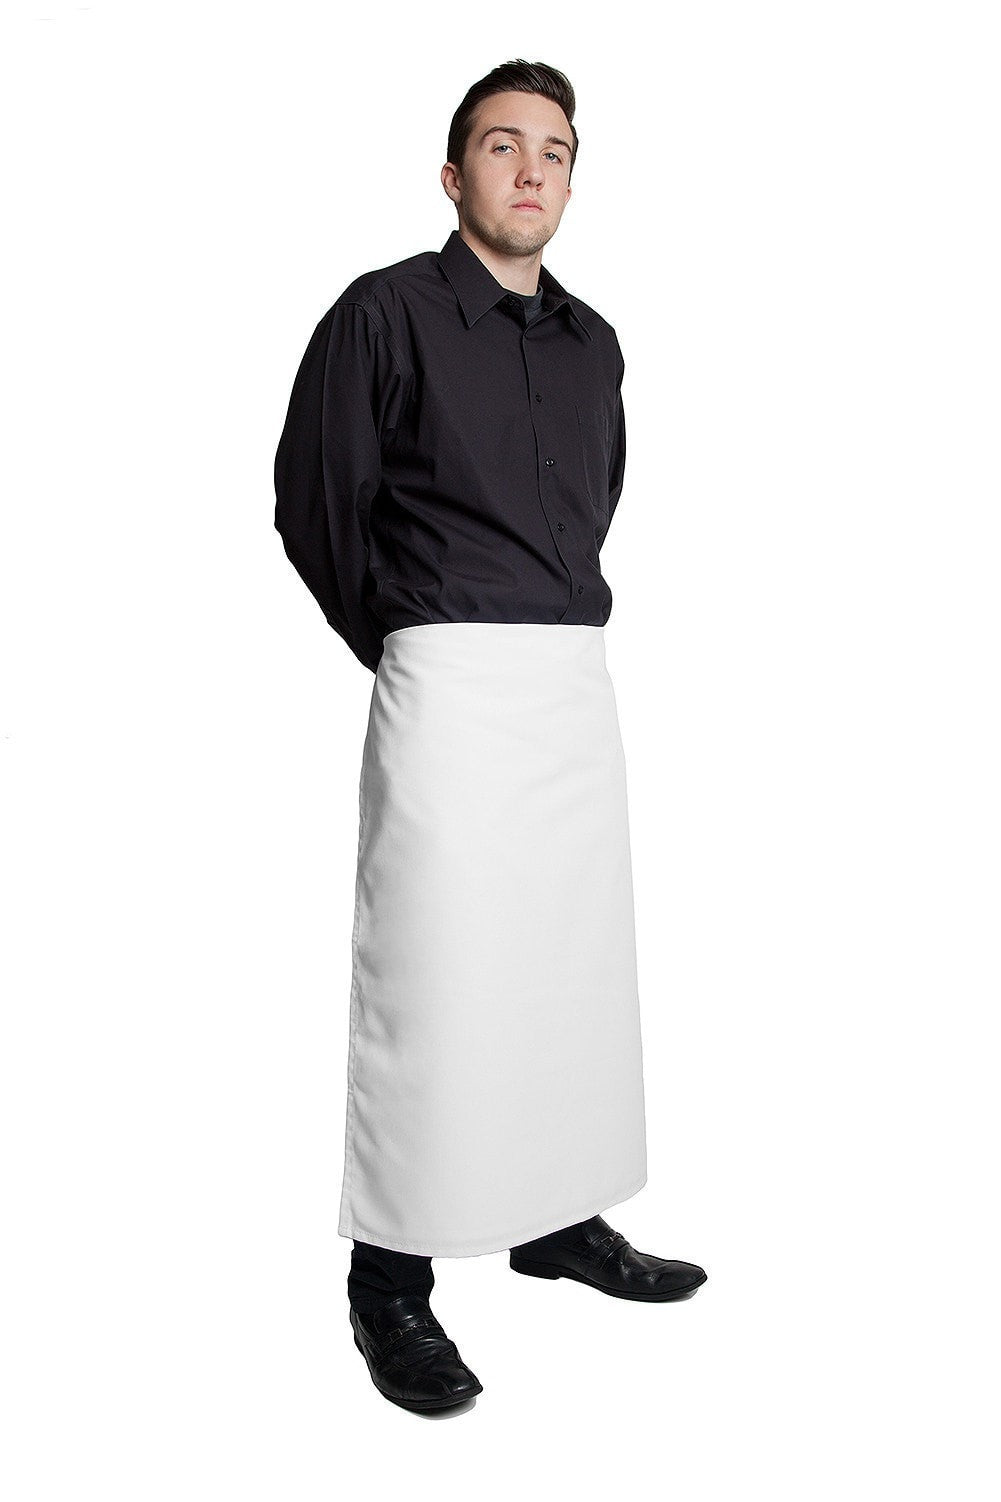 "Full Bistro Apron w/No Pockets 32""L x 28""W White Side Profile"